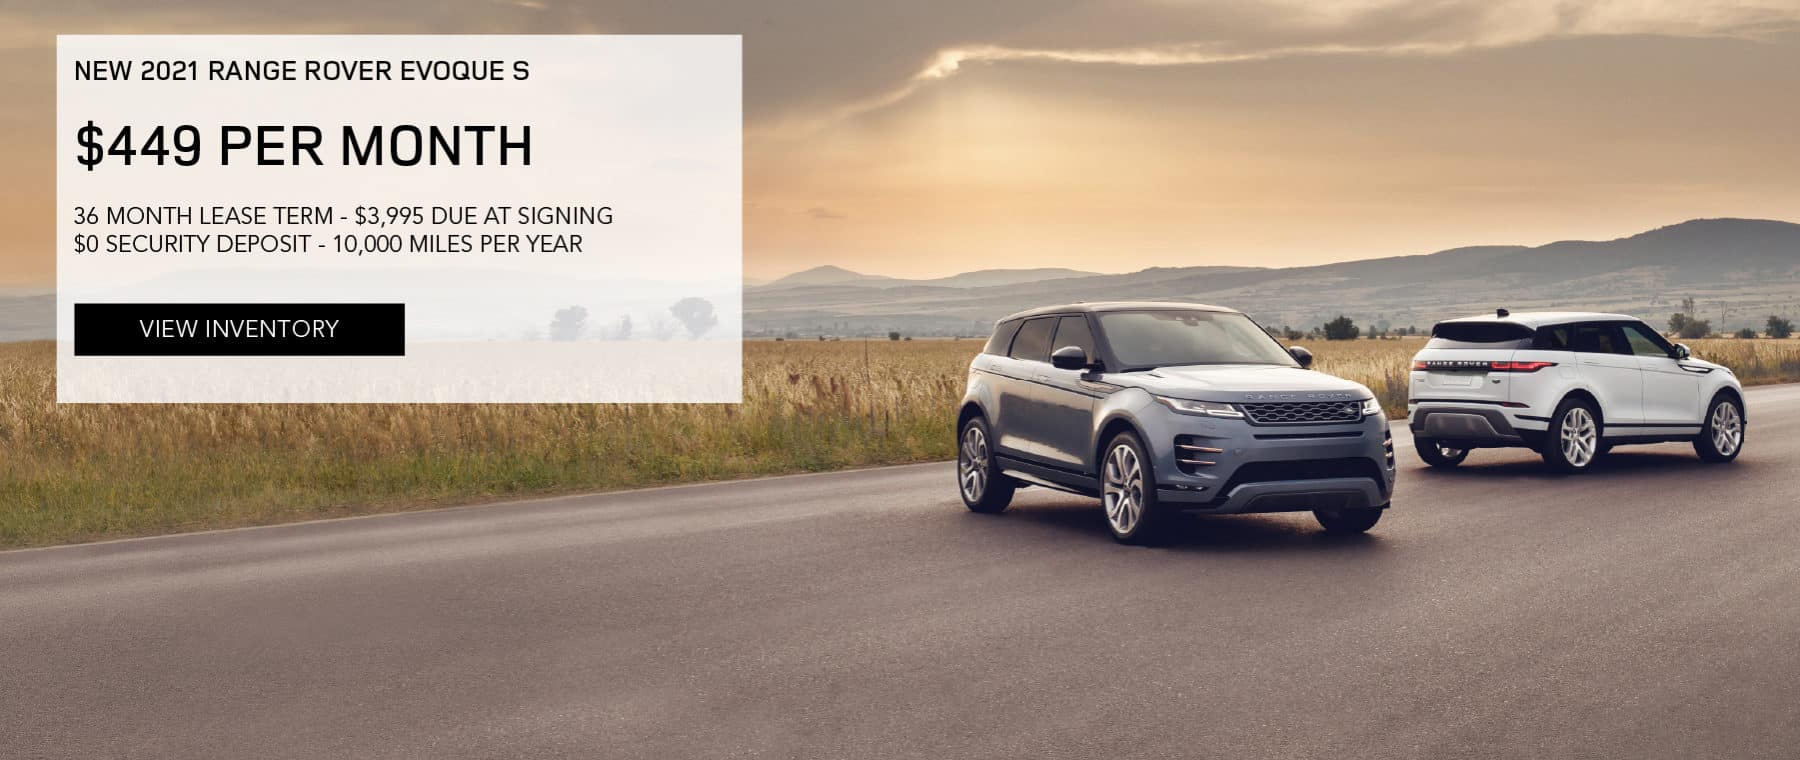 NEW 2021 RANGE ROVER EVOQUE S. $449 PER MONTH. 36 MONTH LEASE TERM. $3,995 CASH DUE AT SIGNING. $0 SECURITY DEPOSIT. 10,000 MILES PER YEAR. EXCLUDES RETAILER FEES, TAXES, TITLE AND REGISTRATION FEES, PROCESSING FEE AND ANY EMISSION TESTING CHARGE. OFFER ENDS 4/30/2021. VIEW INVENTORY. BLUE AND SILVER RANGE ROVER EVOQUE MODELS PARKED IN COUNTRYSIDE.